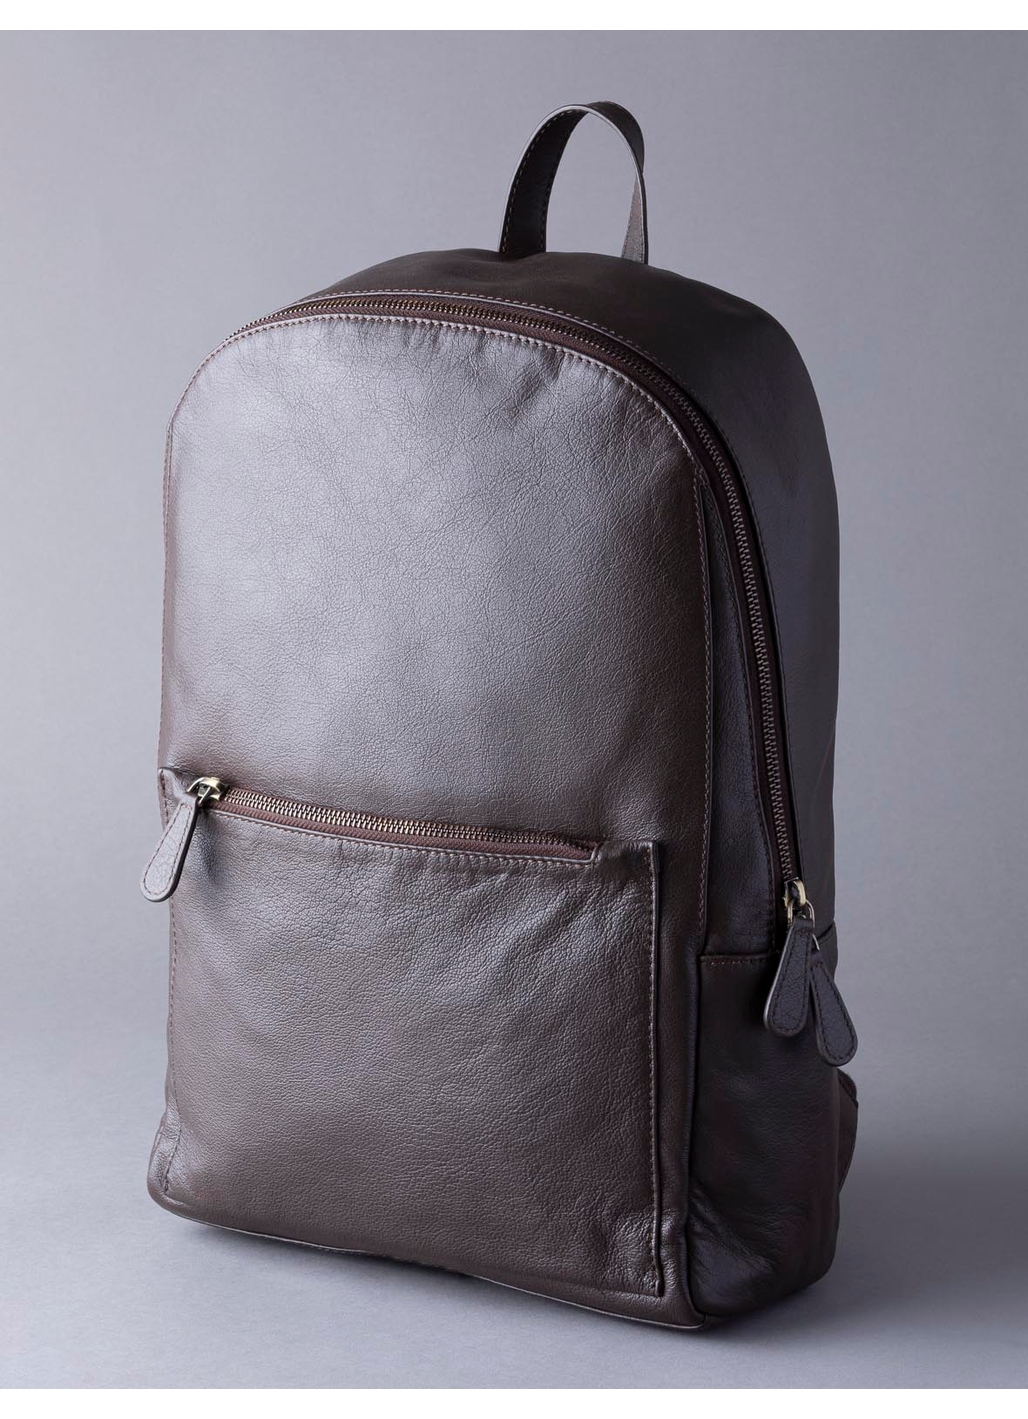 Scarsdale Leather Backpack in Brown